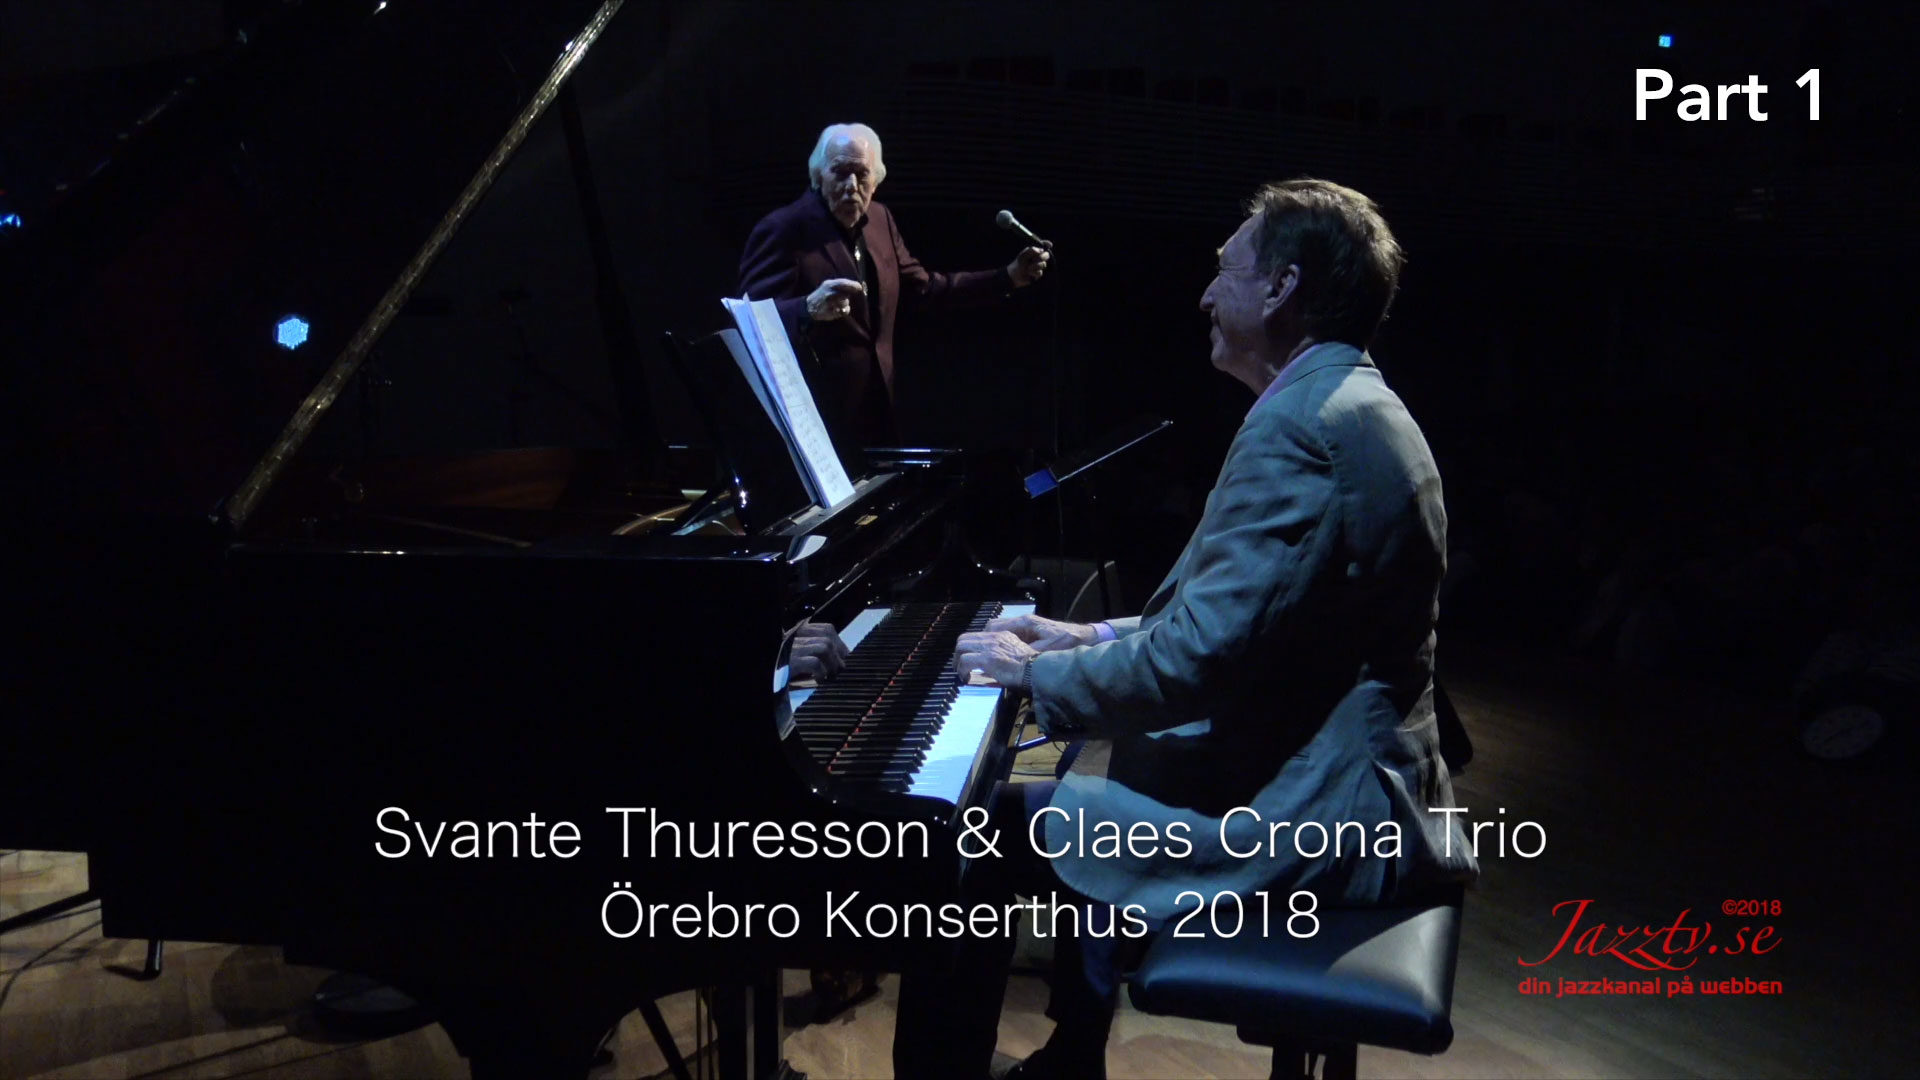 Svante Thuresson & Claes Crona Trio